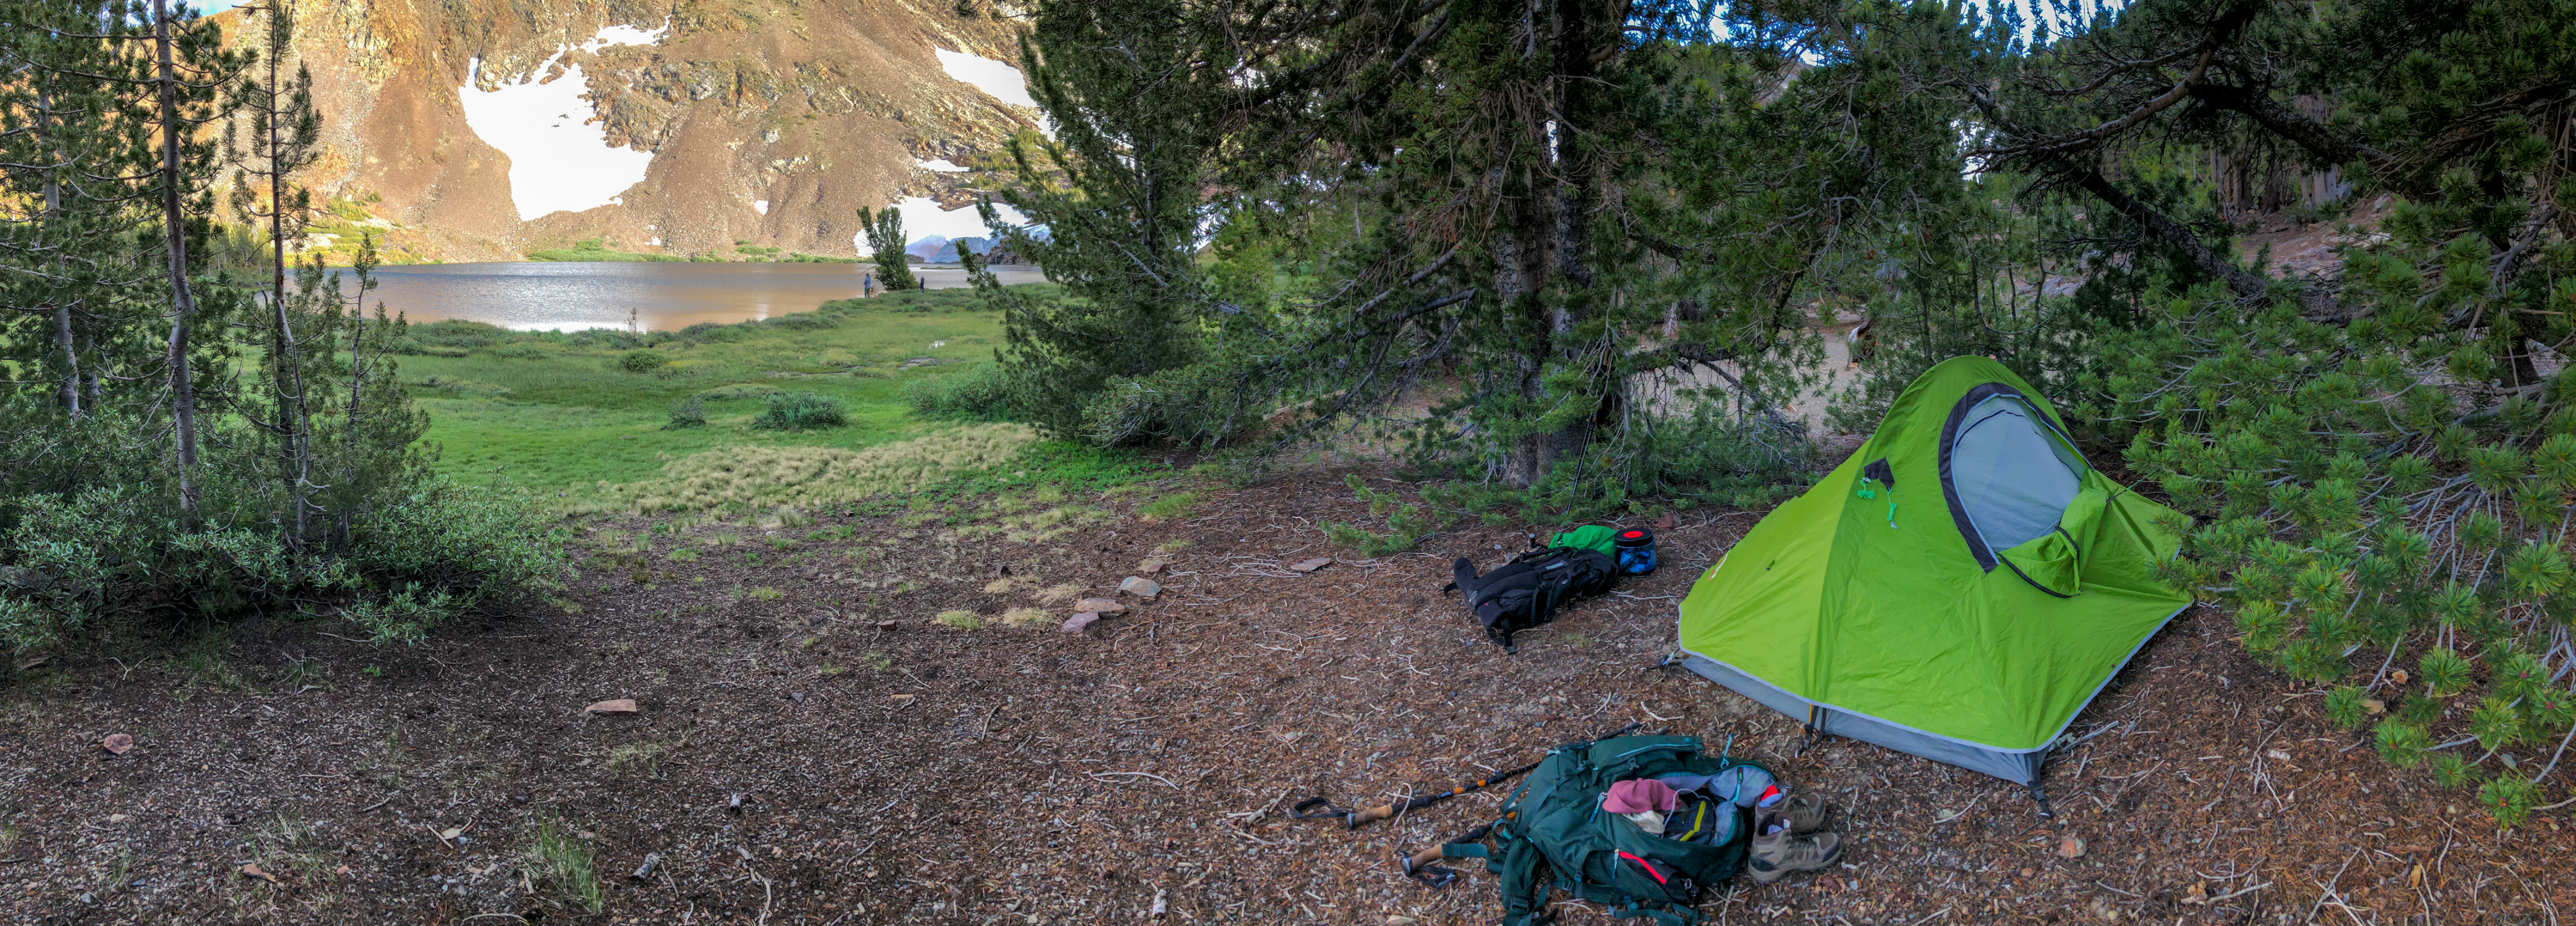 Tent set up near Upper Sardine Lake near Yosemite National Park.